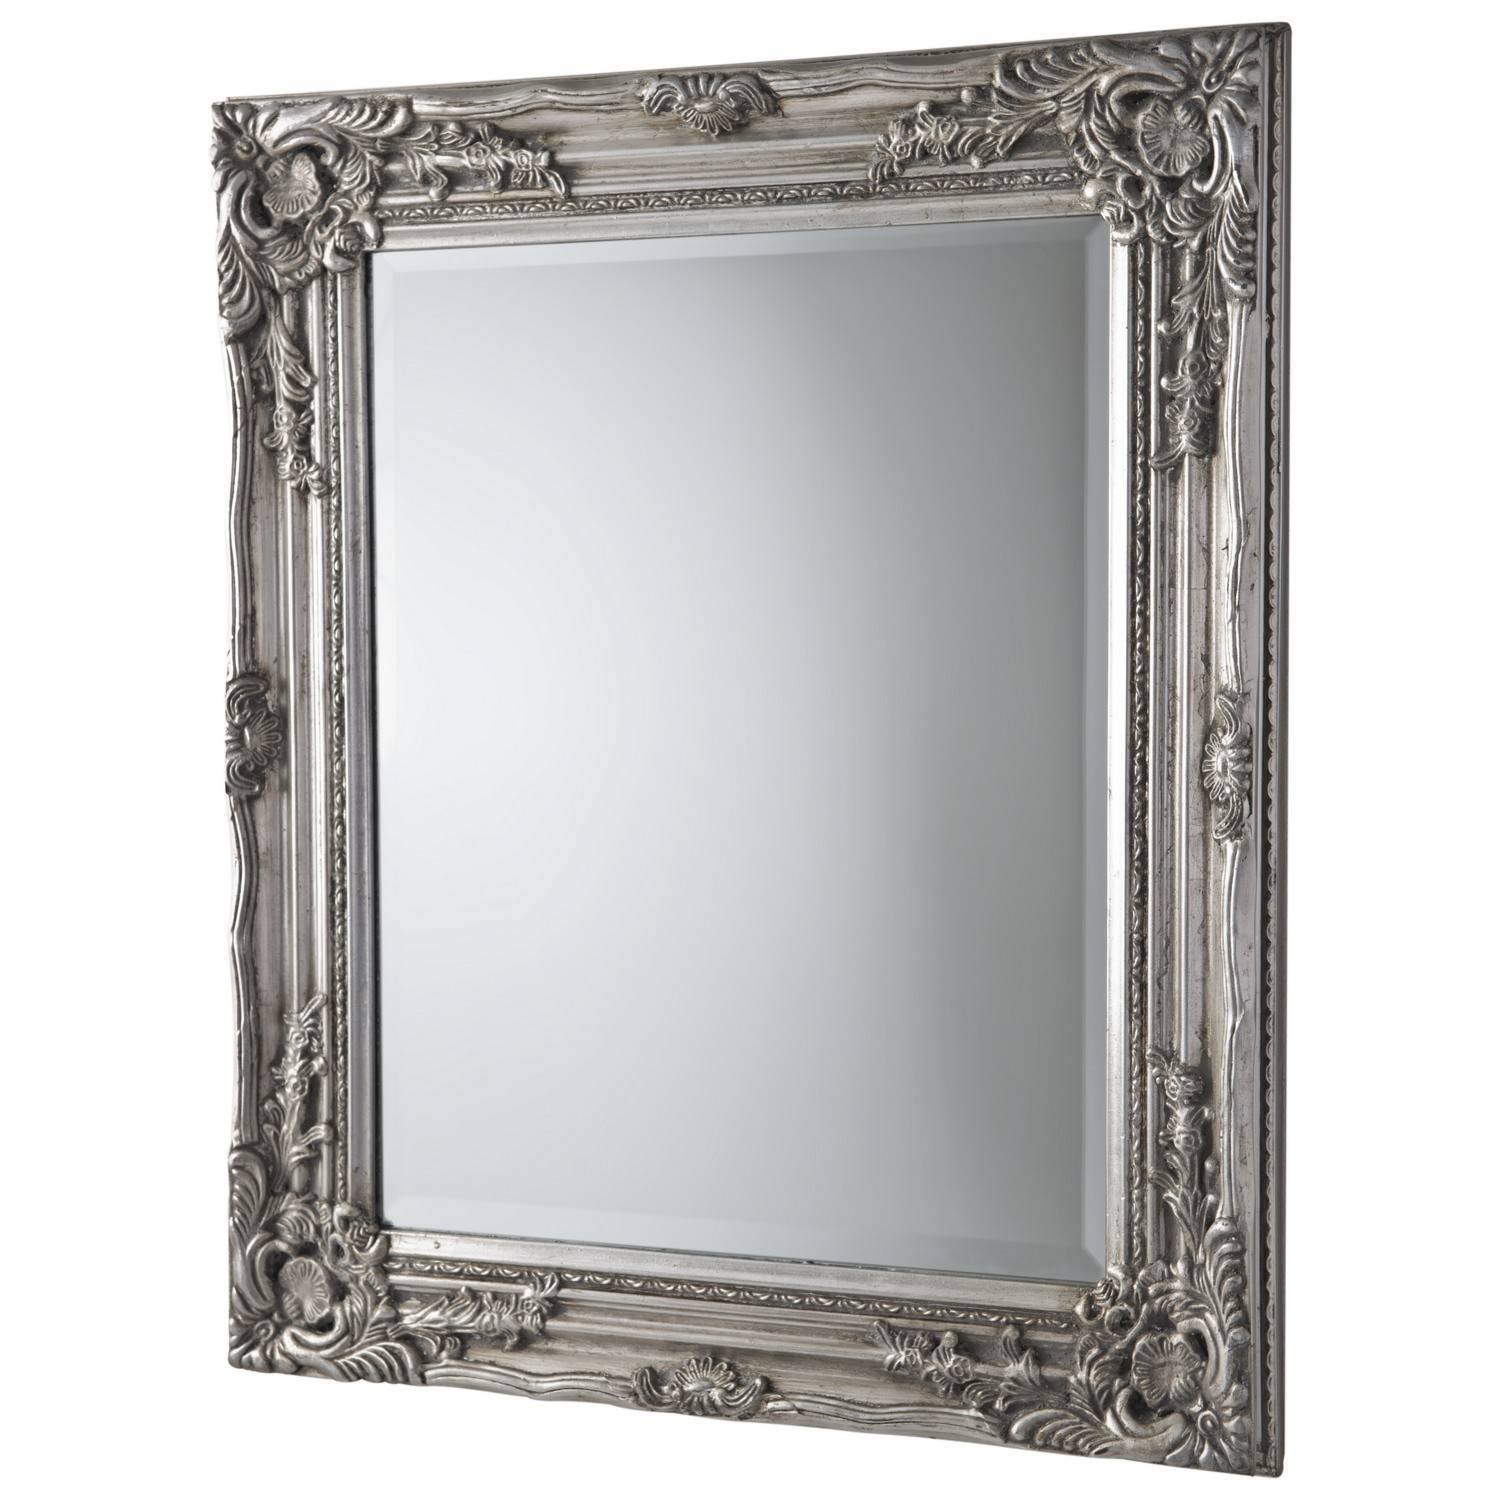 Antique Ornate Mirror Silver in Silver Ornate Wall Mirrors (Image 5 of 25)